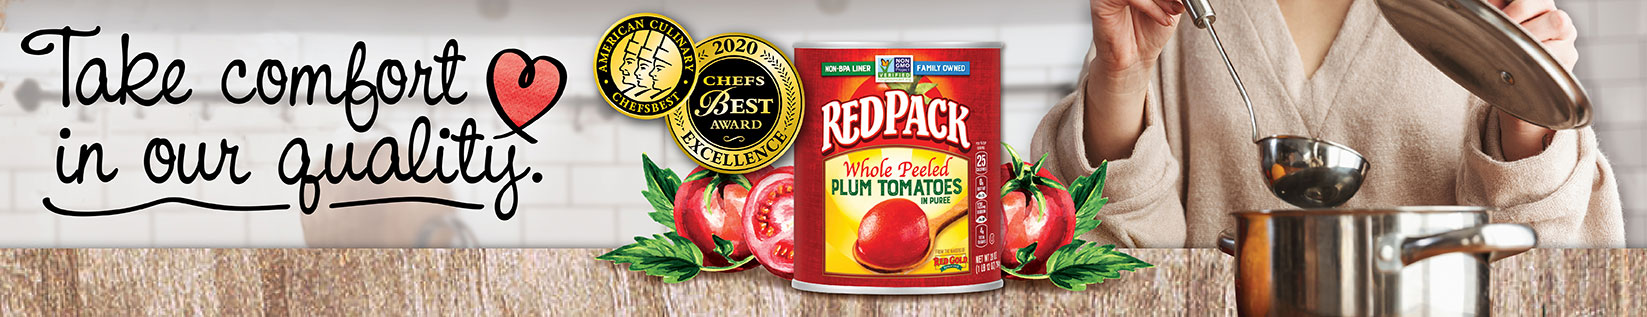 Image of Redpack Tomatoes with steel soup pot